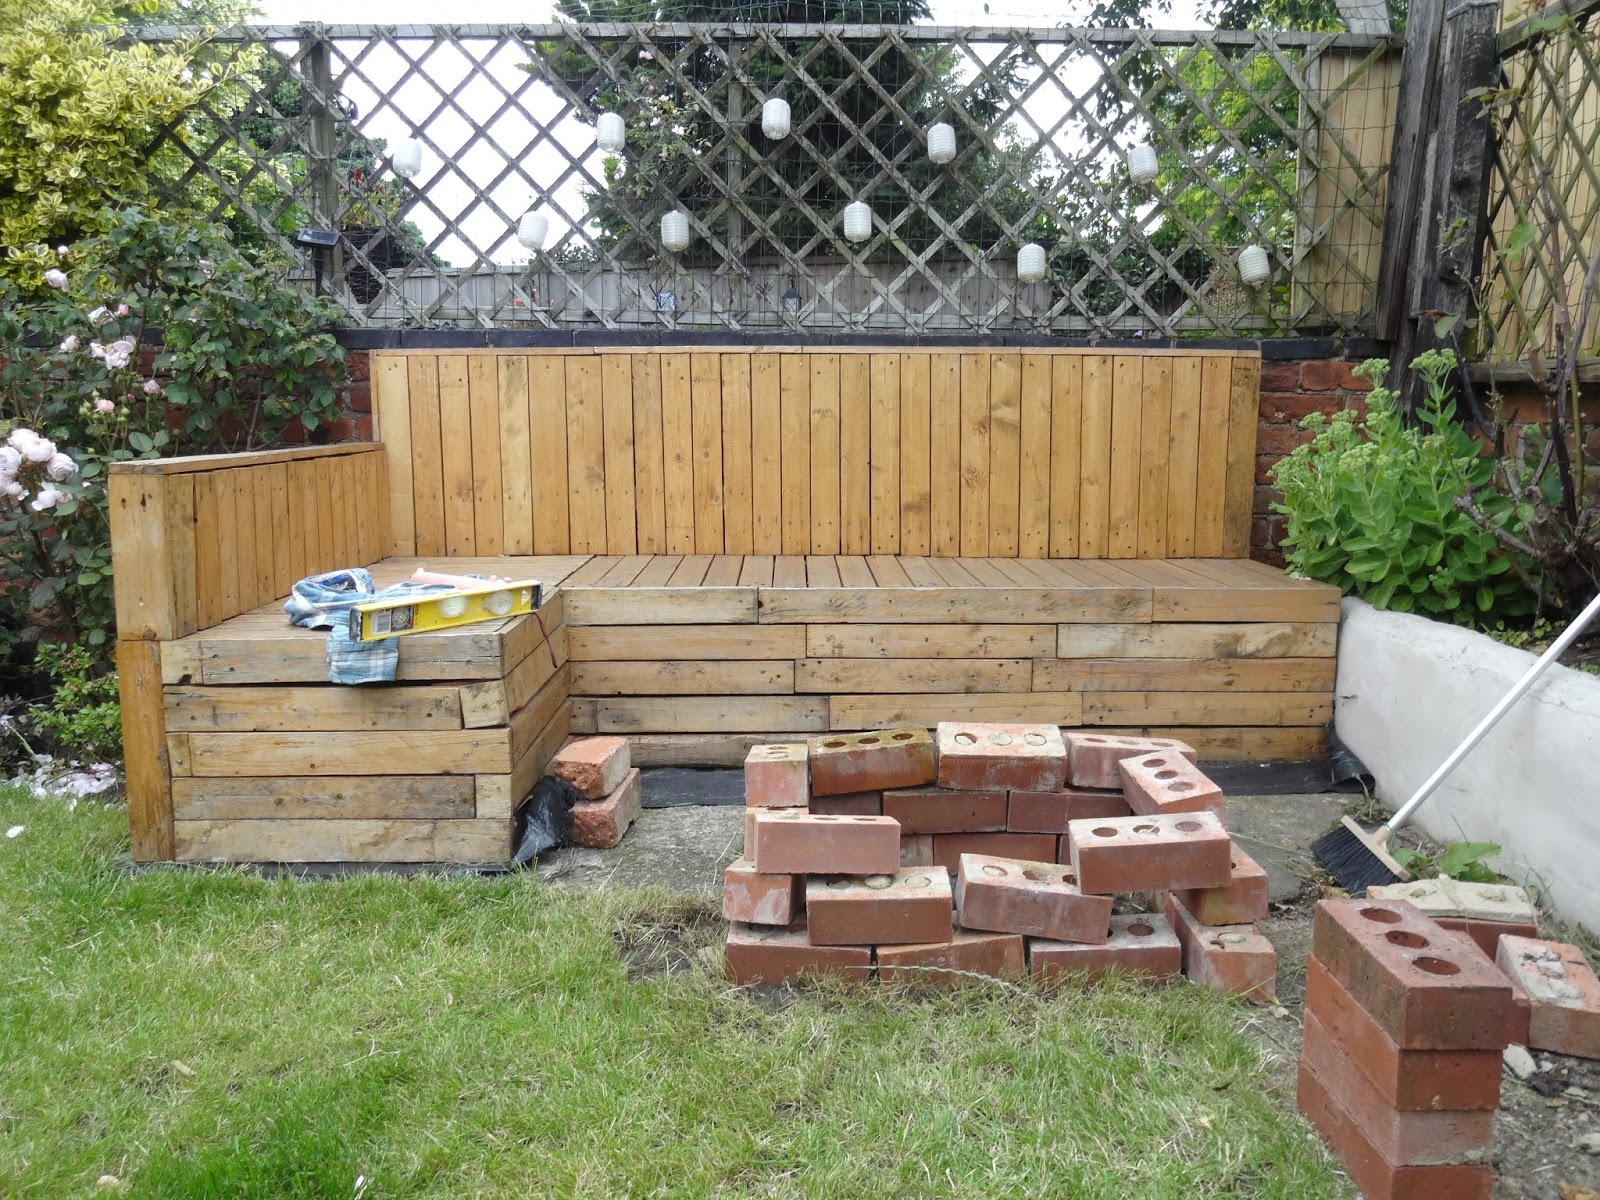 How To Build A Diy Fire Pit Using Bricks For Under 25 Kezzabeth Diy Renovation Blog